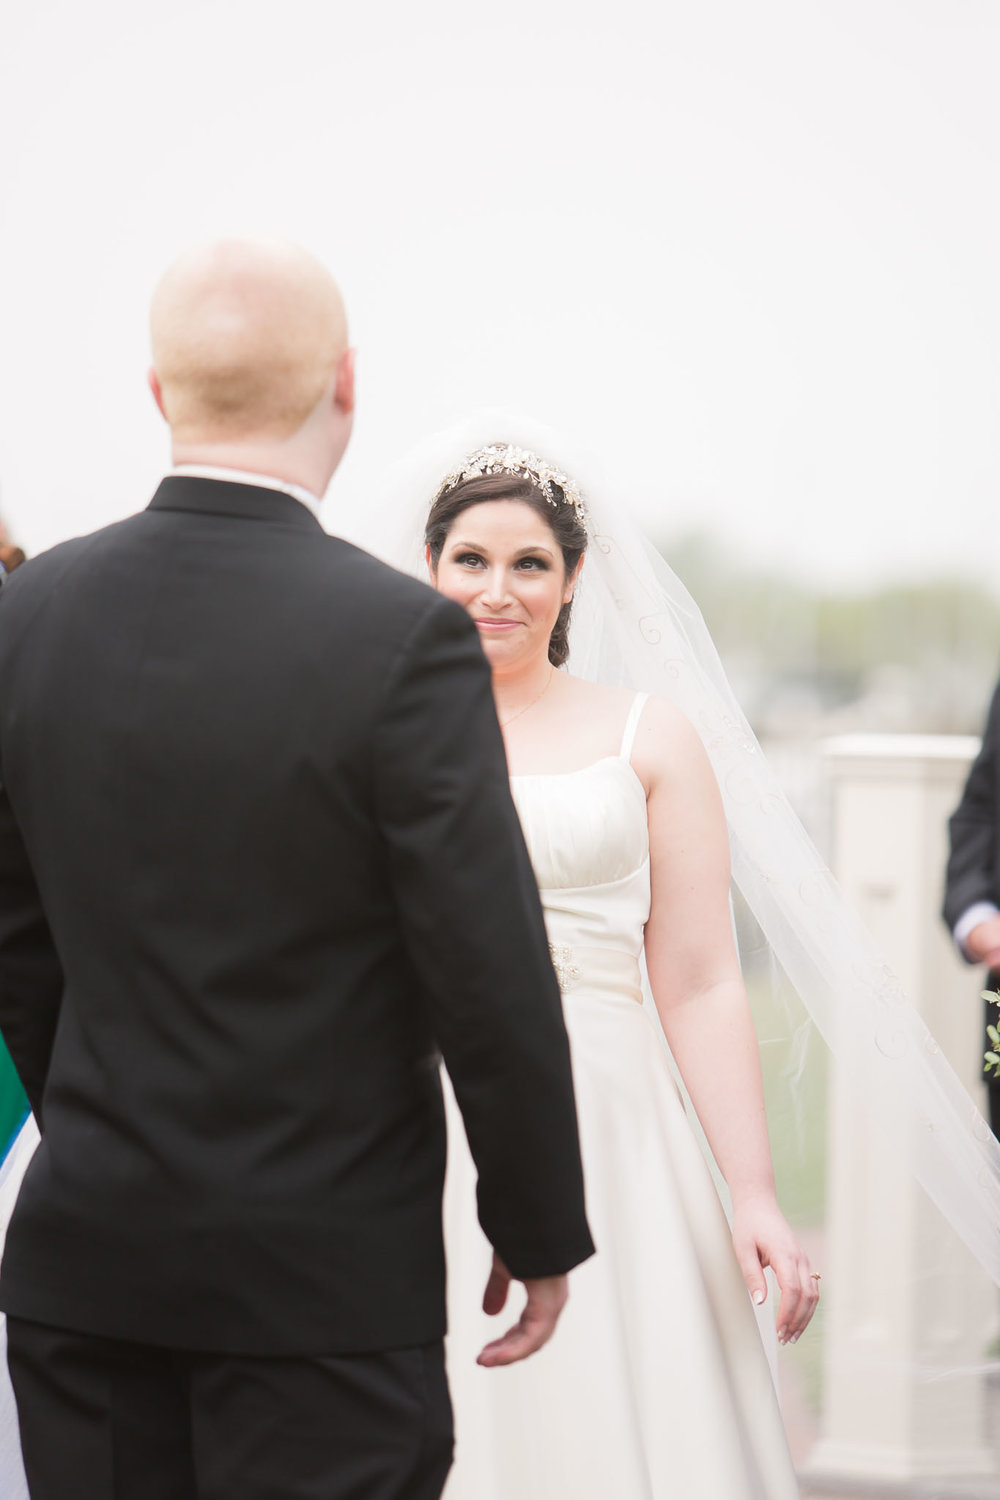 peacock themed wedding at clarks landing first look between bride and groom